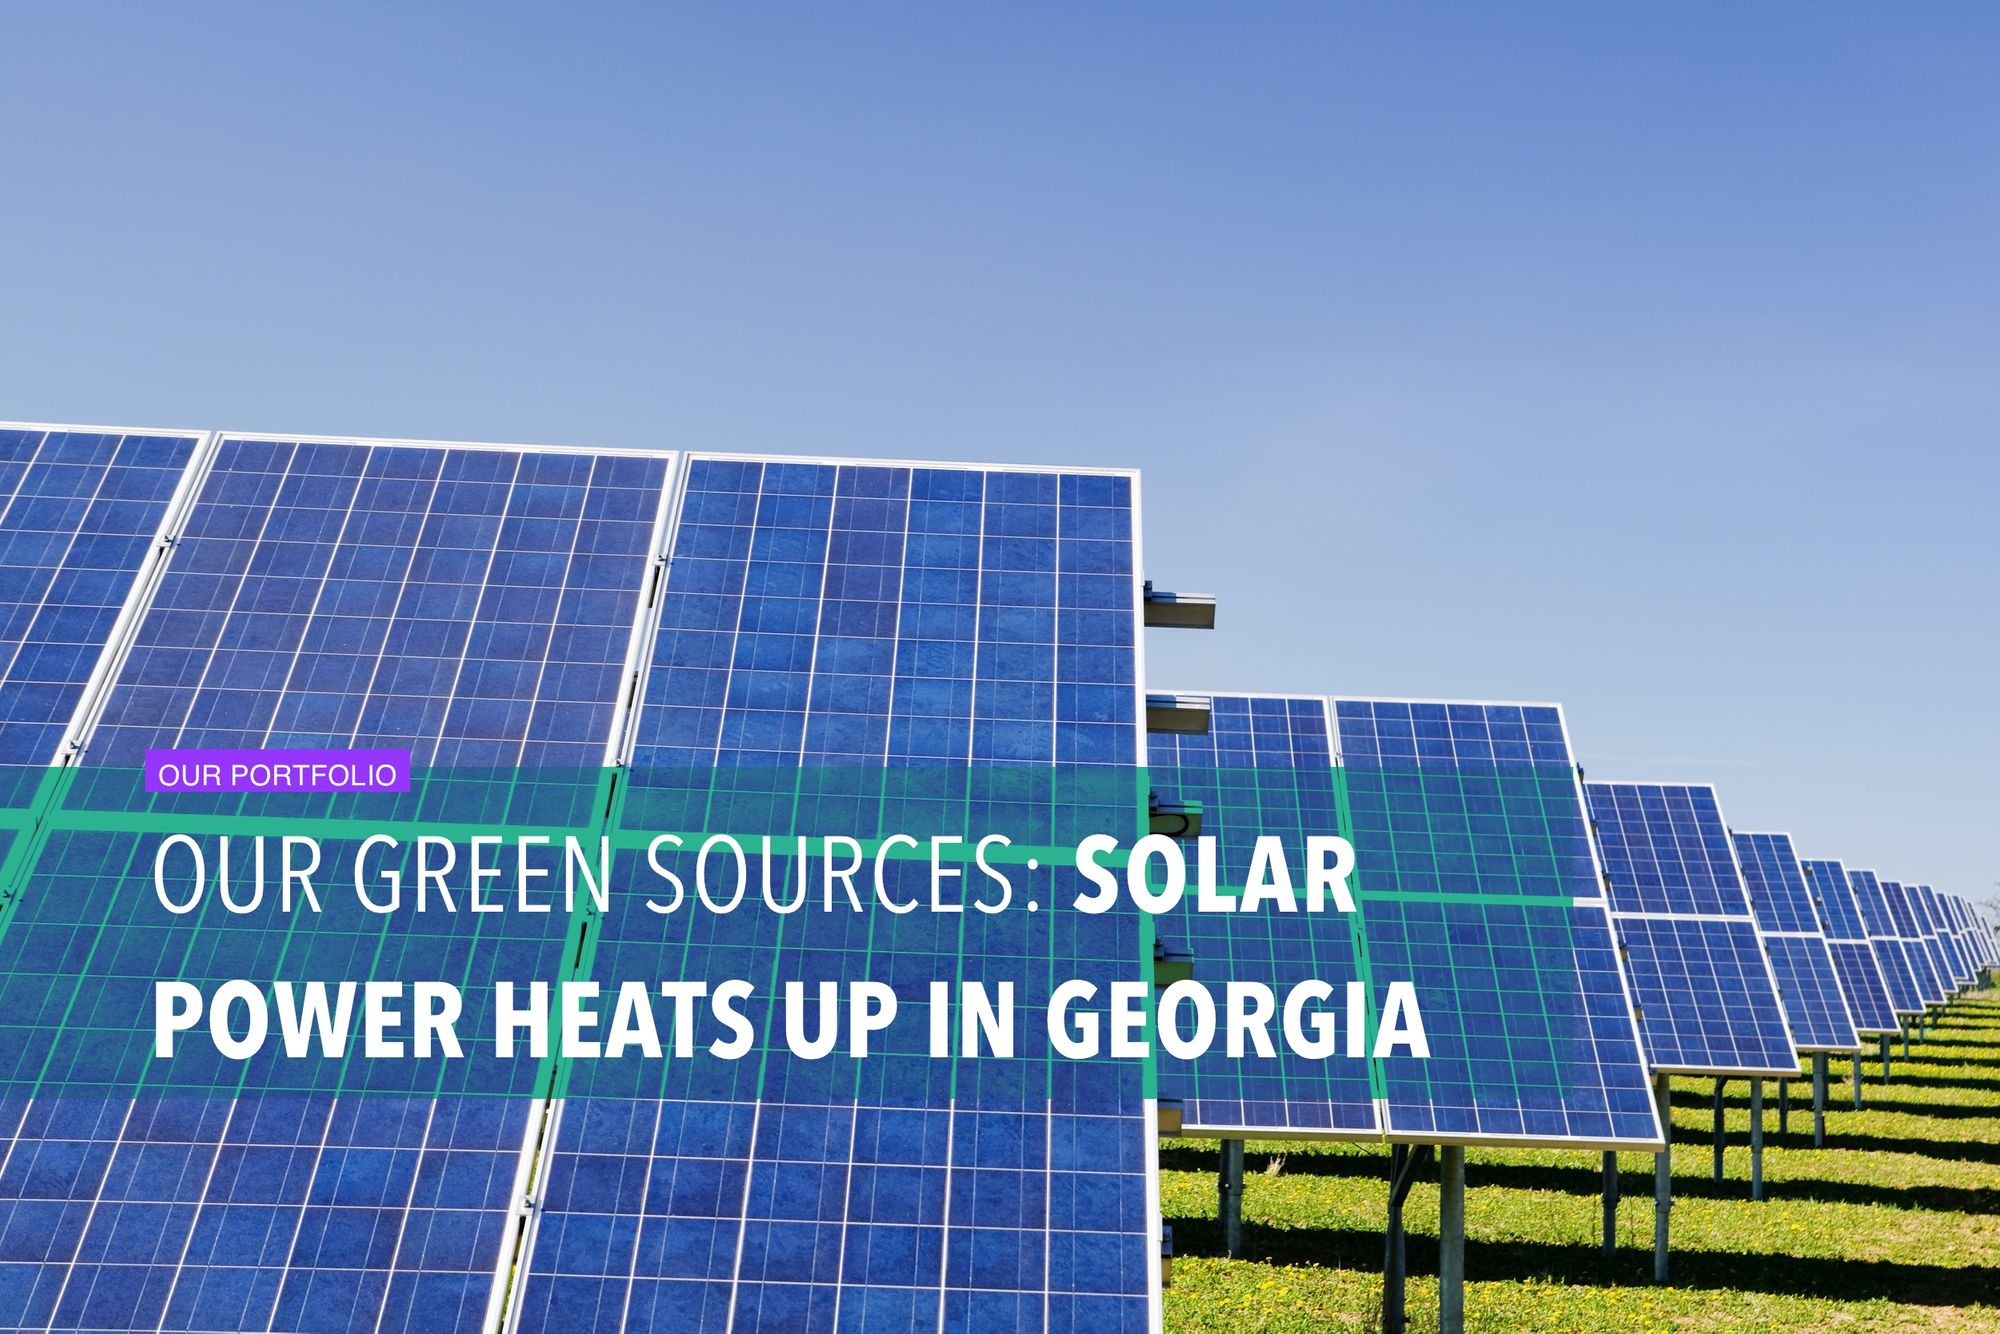 Our green sources: Solar power heats up in Georgia